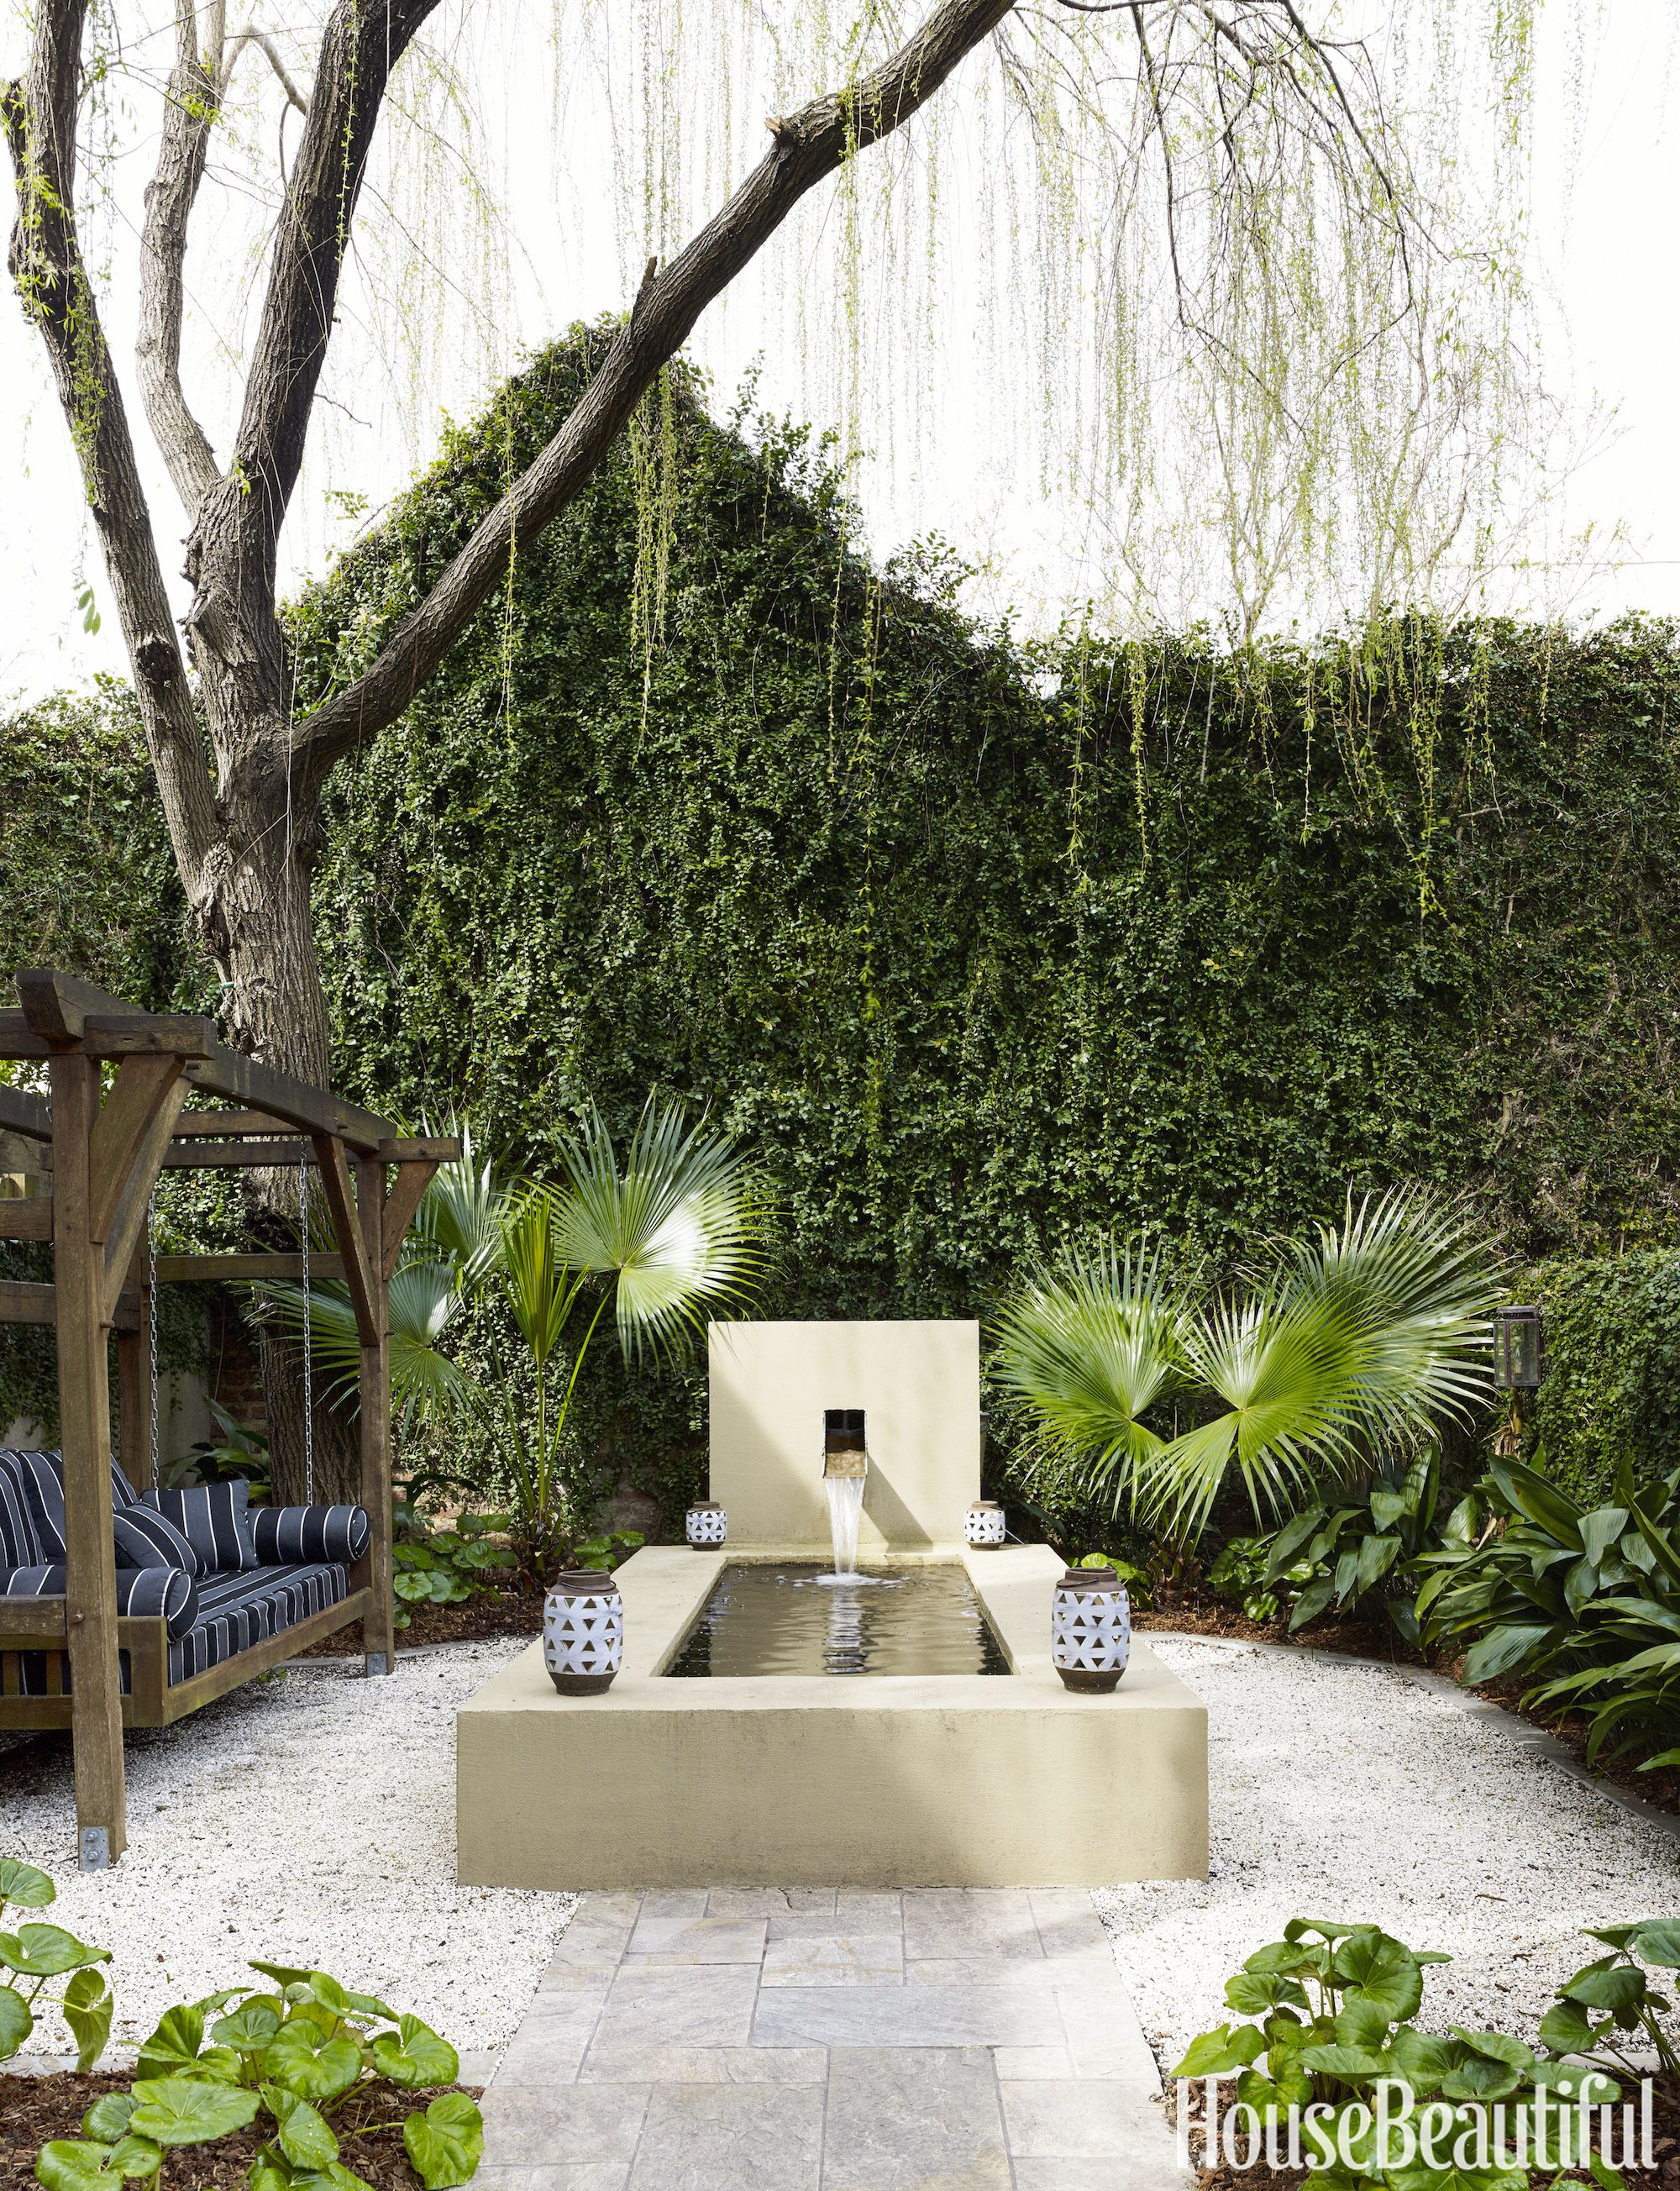 53 Beautiful Landscaping Ideas Best Backyard Landscape Design Tips for 14 Some of the Coolest Ways How to Build How To Landscape A Backyard